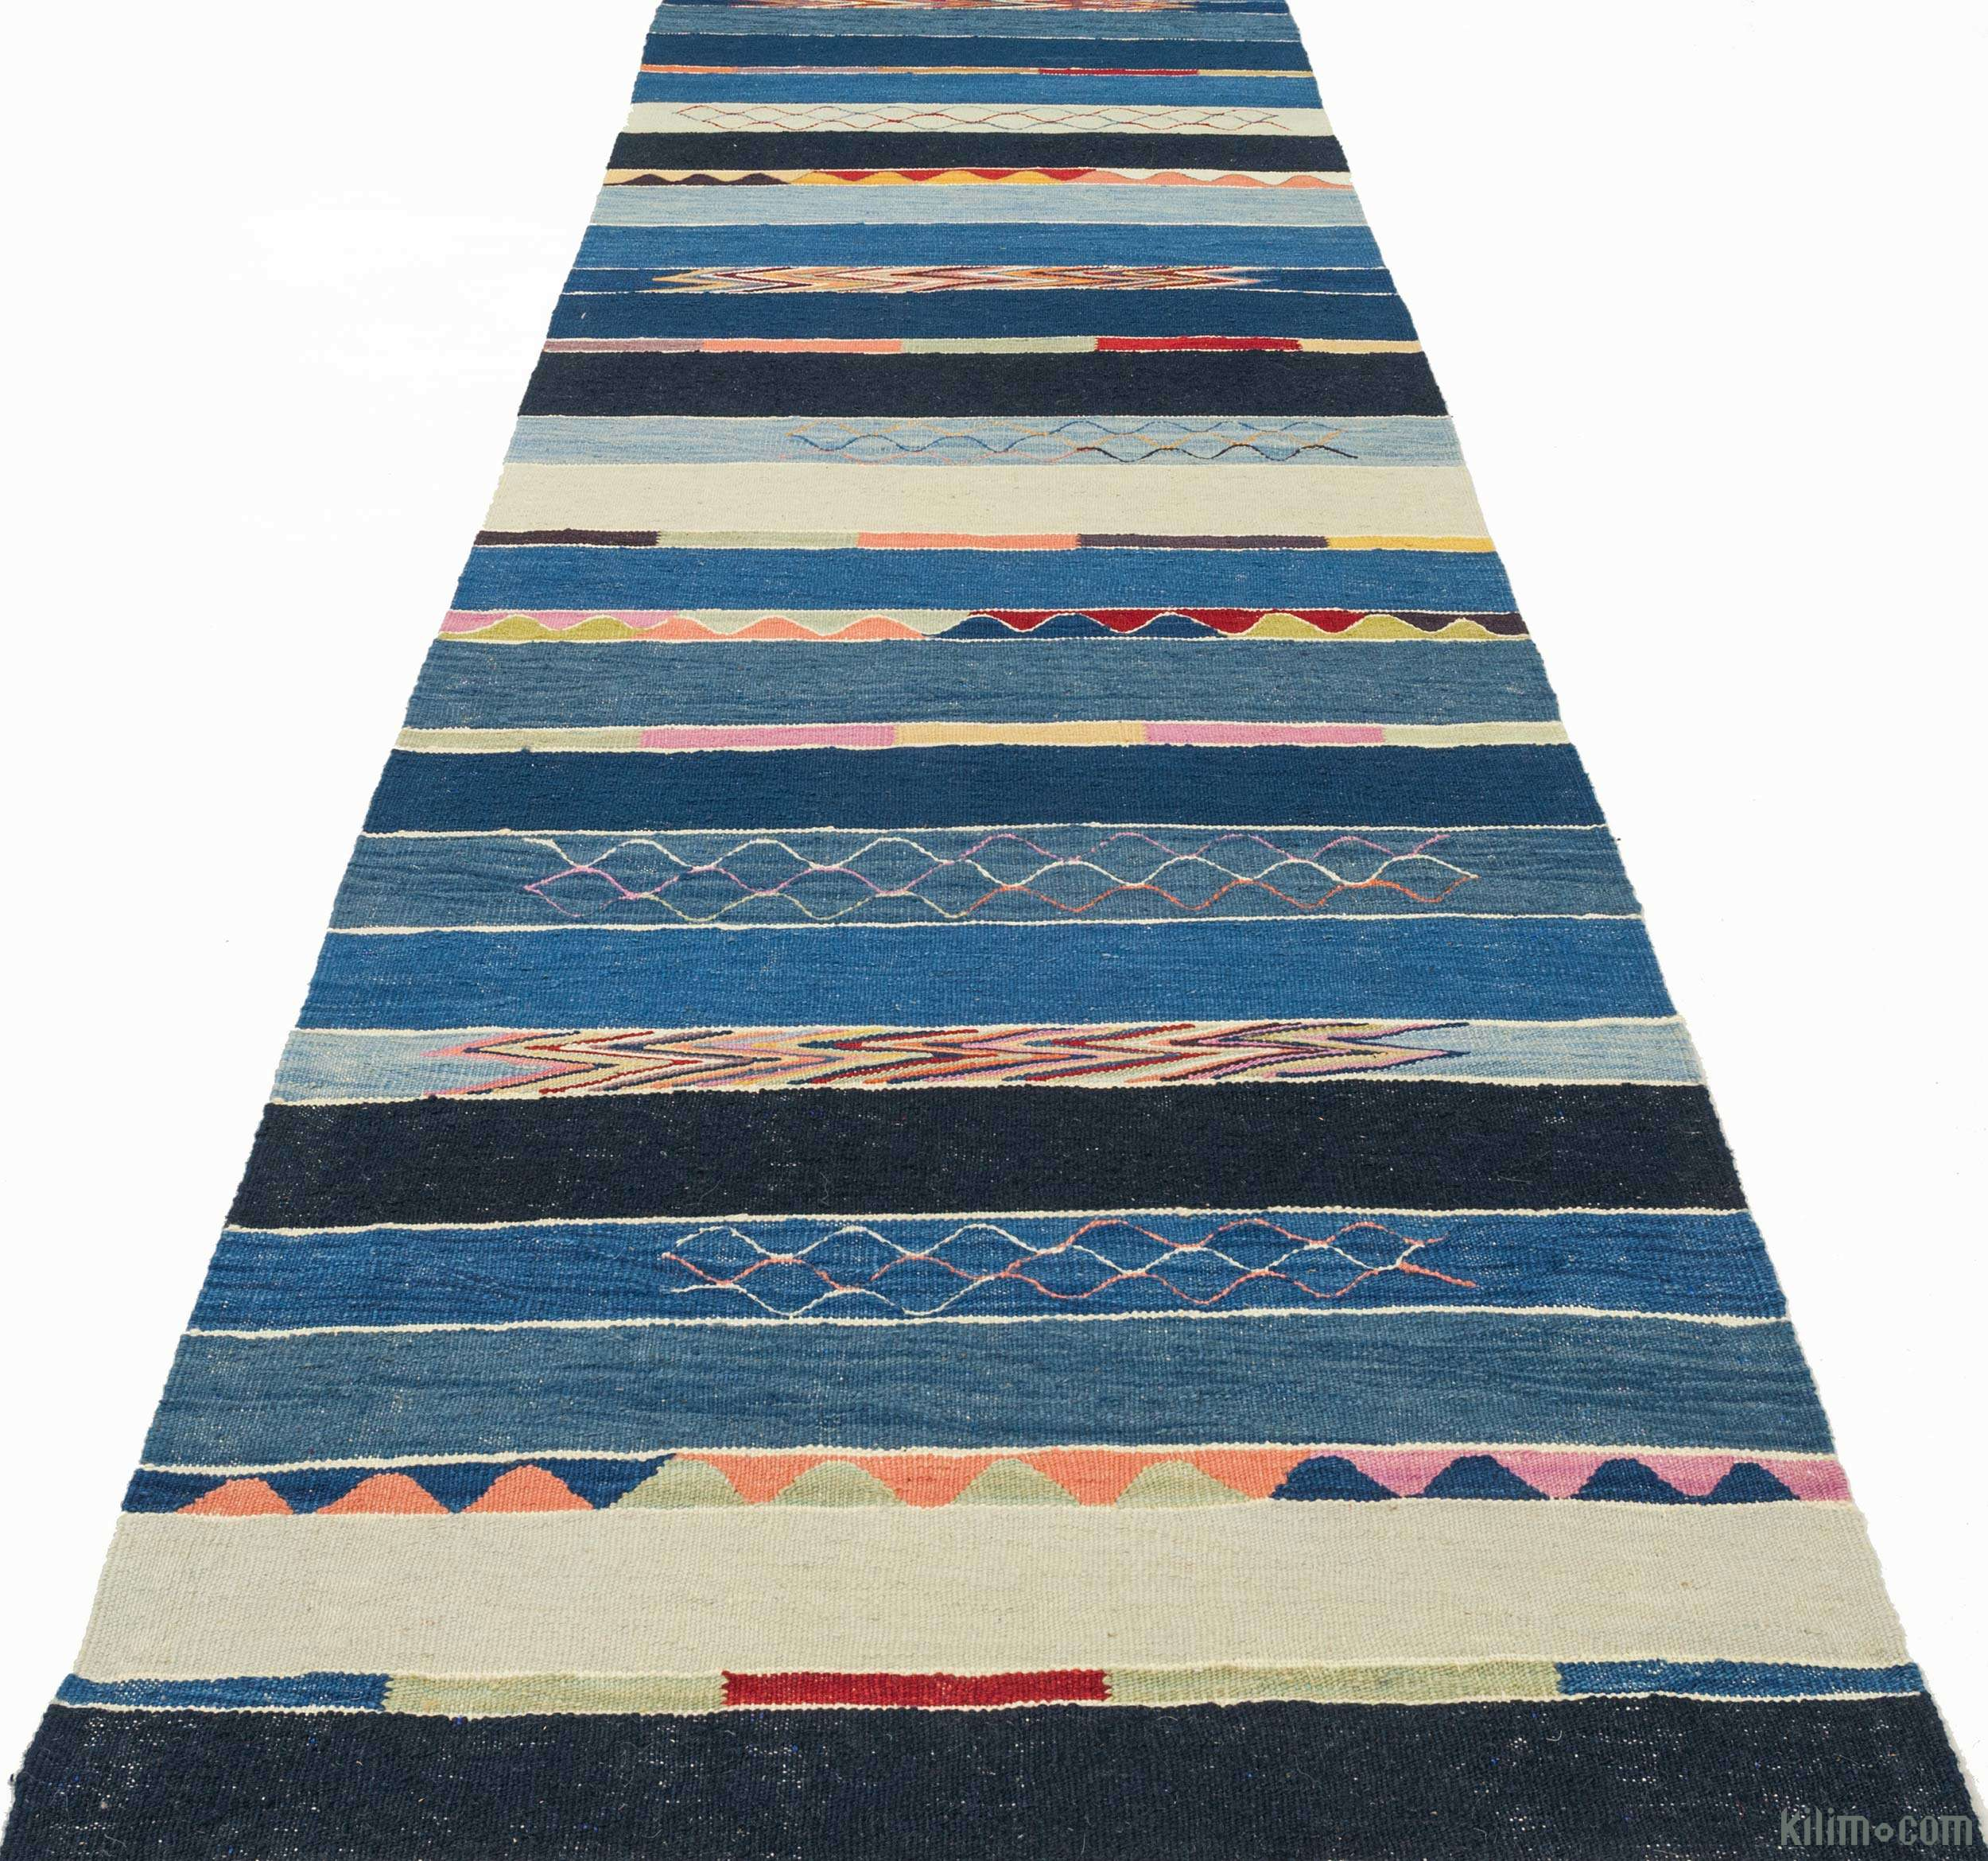 k0010791 light blue blue new turkish kilim runner rug. Black Bedroom Furniture Sets. Home Design Ideas